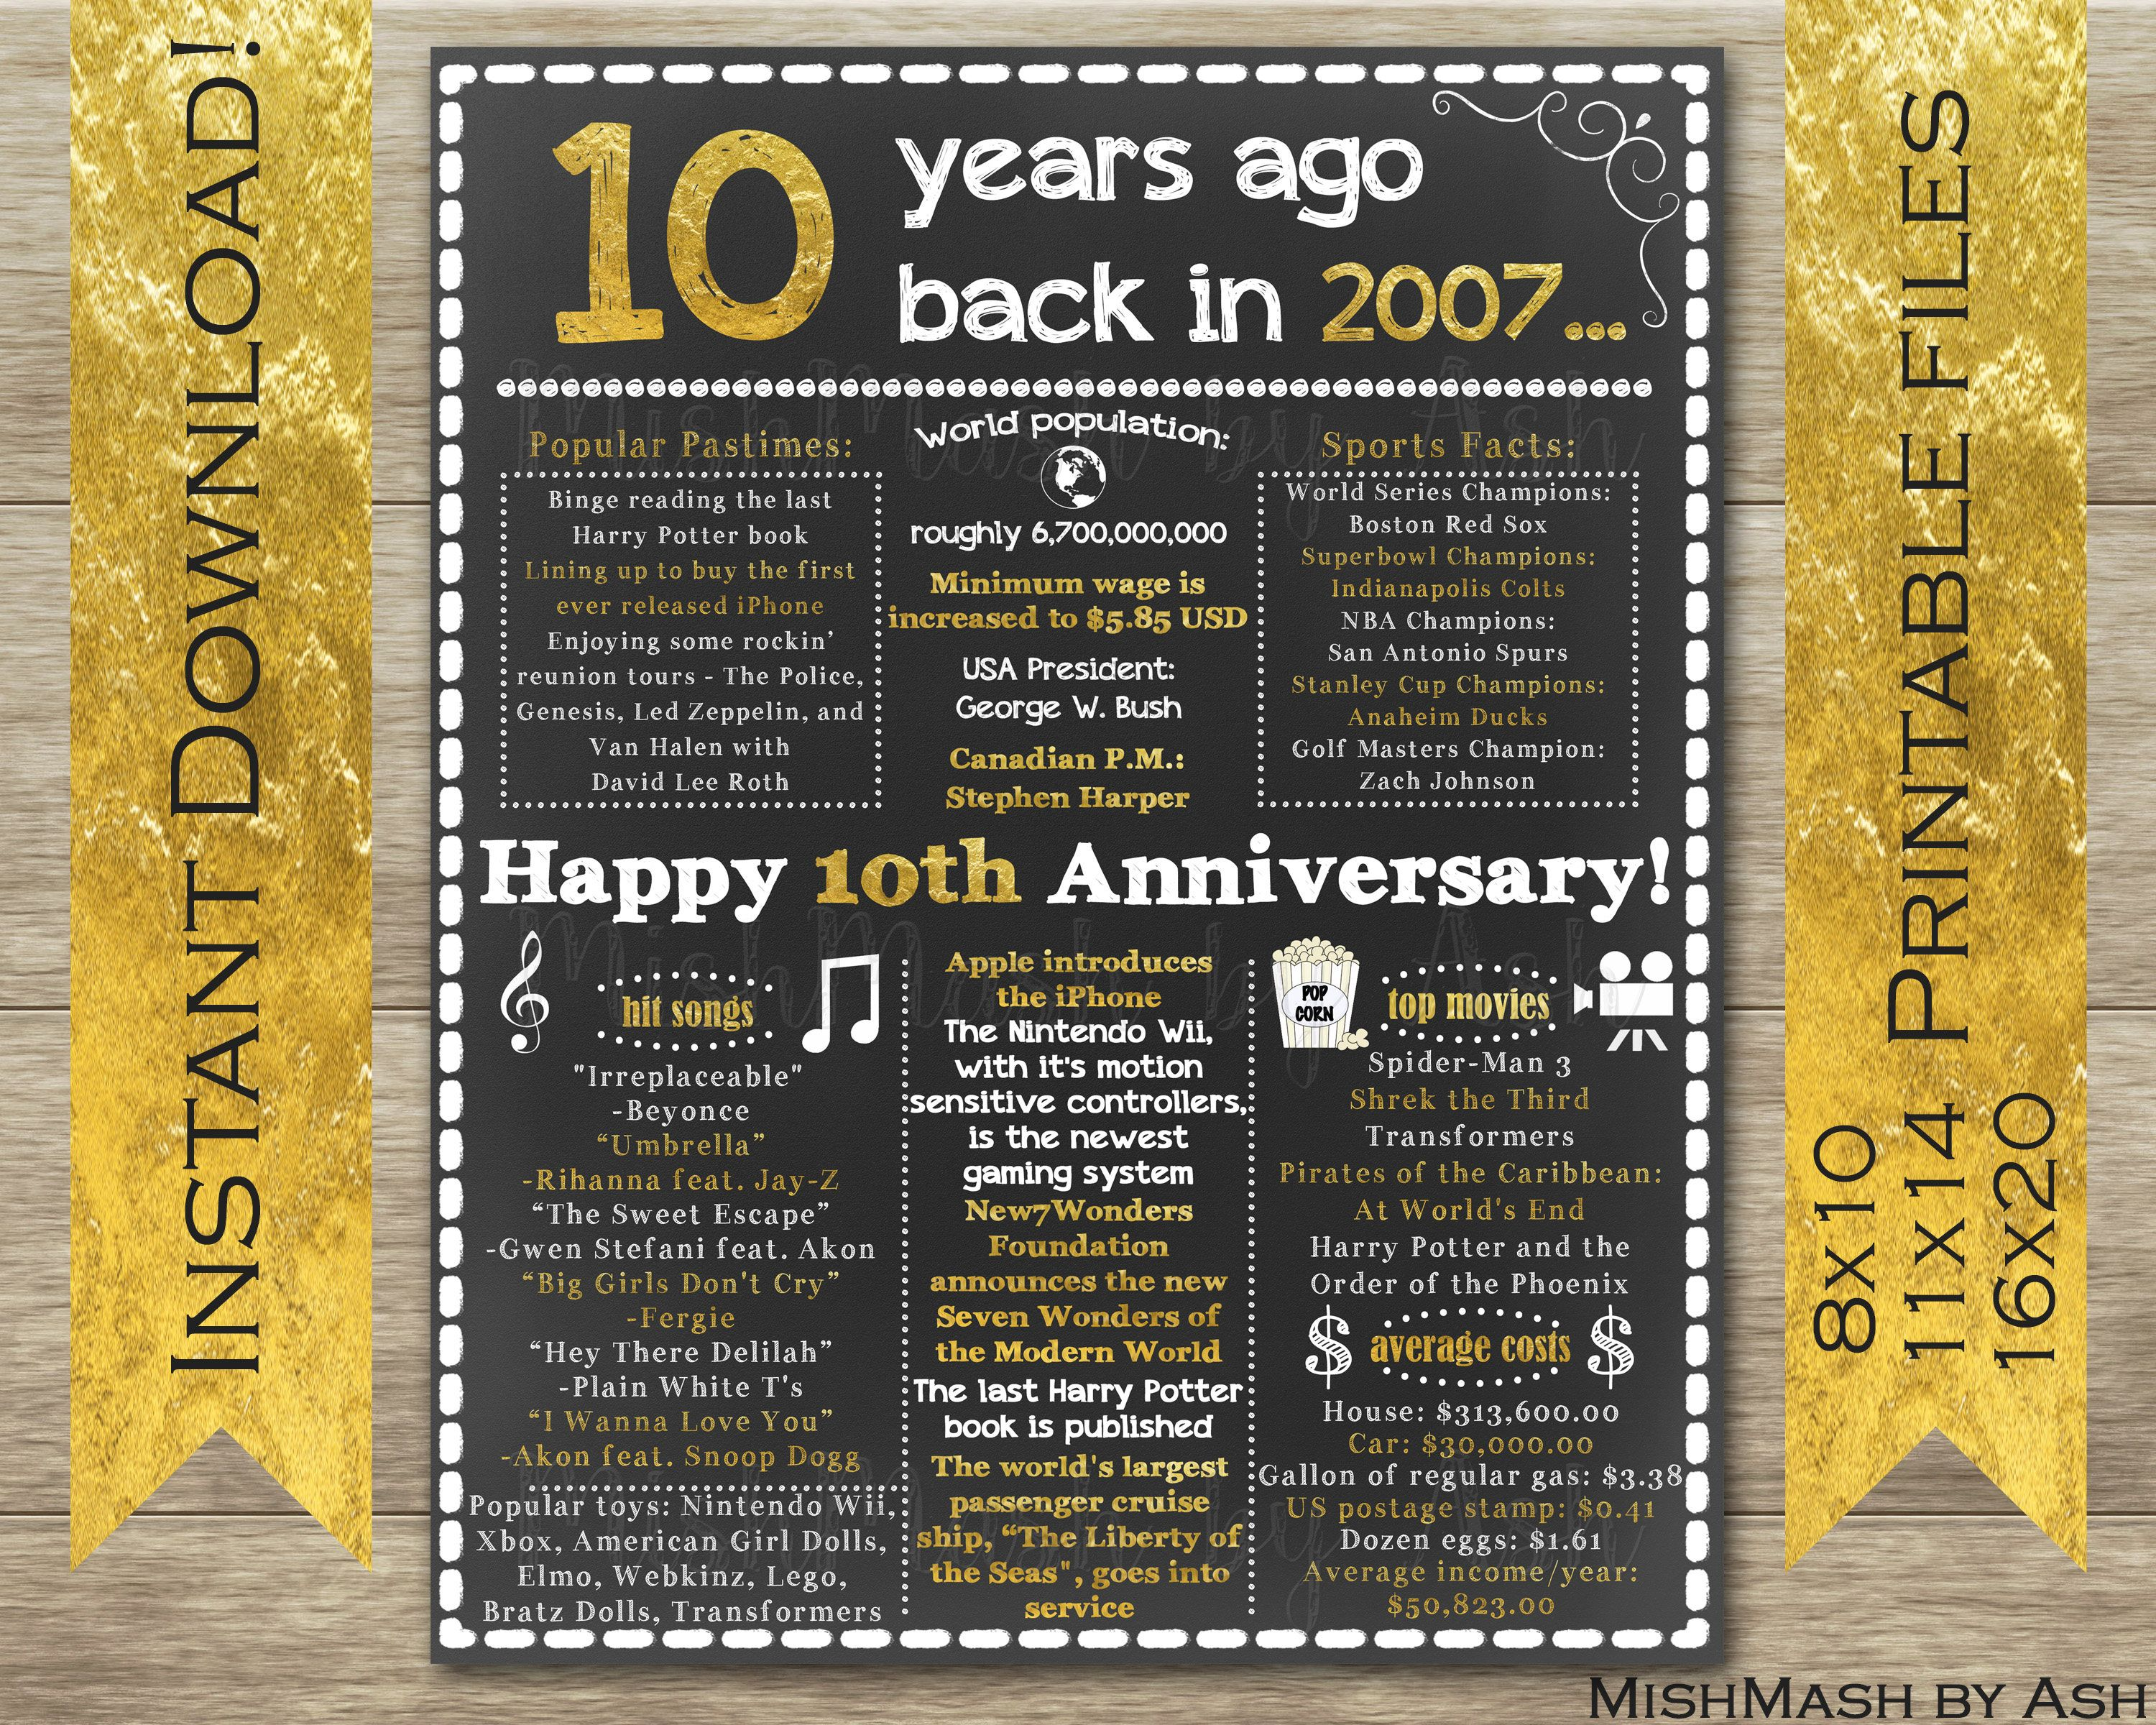 10th Anniversary Gift Ideas 10th Anniversary Poster 10th Anniversary Sign Happy 10th Anniversary 10 Ye Birthday Sign 30th Birthday Sign Happy 60th Birthday